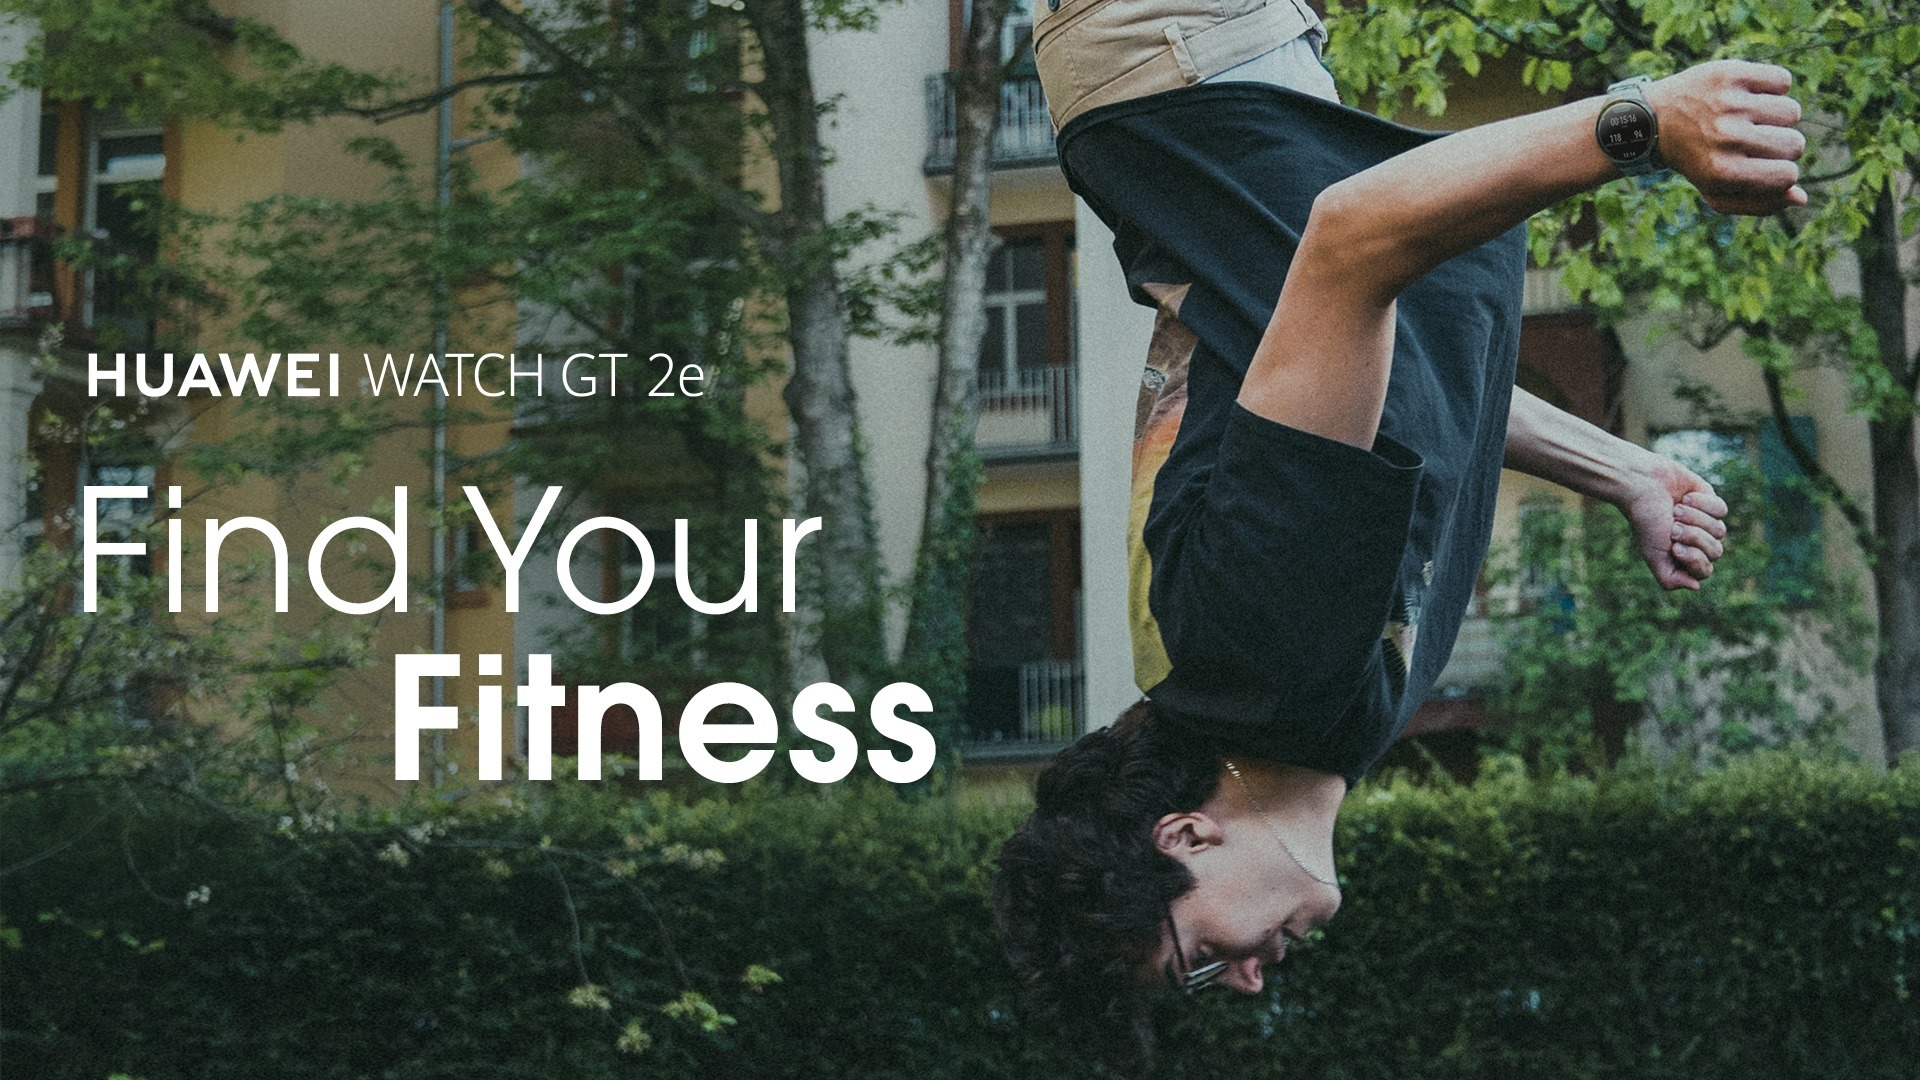 Health on your wrist. Get inspired by Birdseye and stay on track with your workouts with #HUAWEIWATCHGT2e